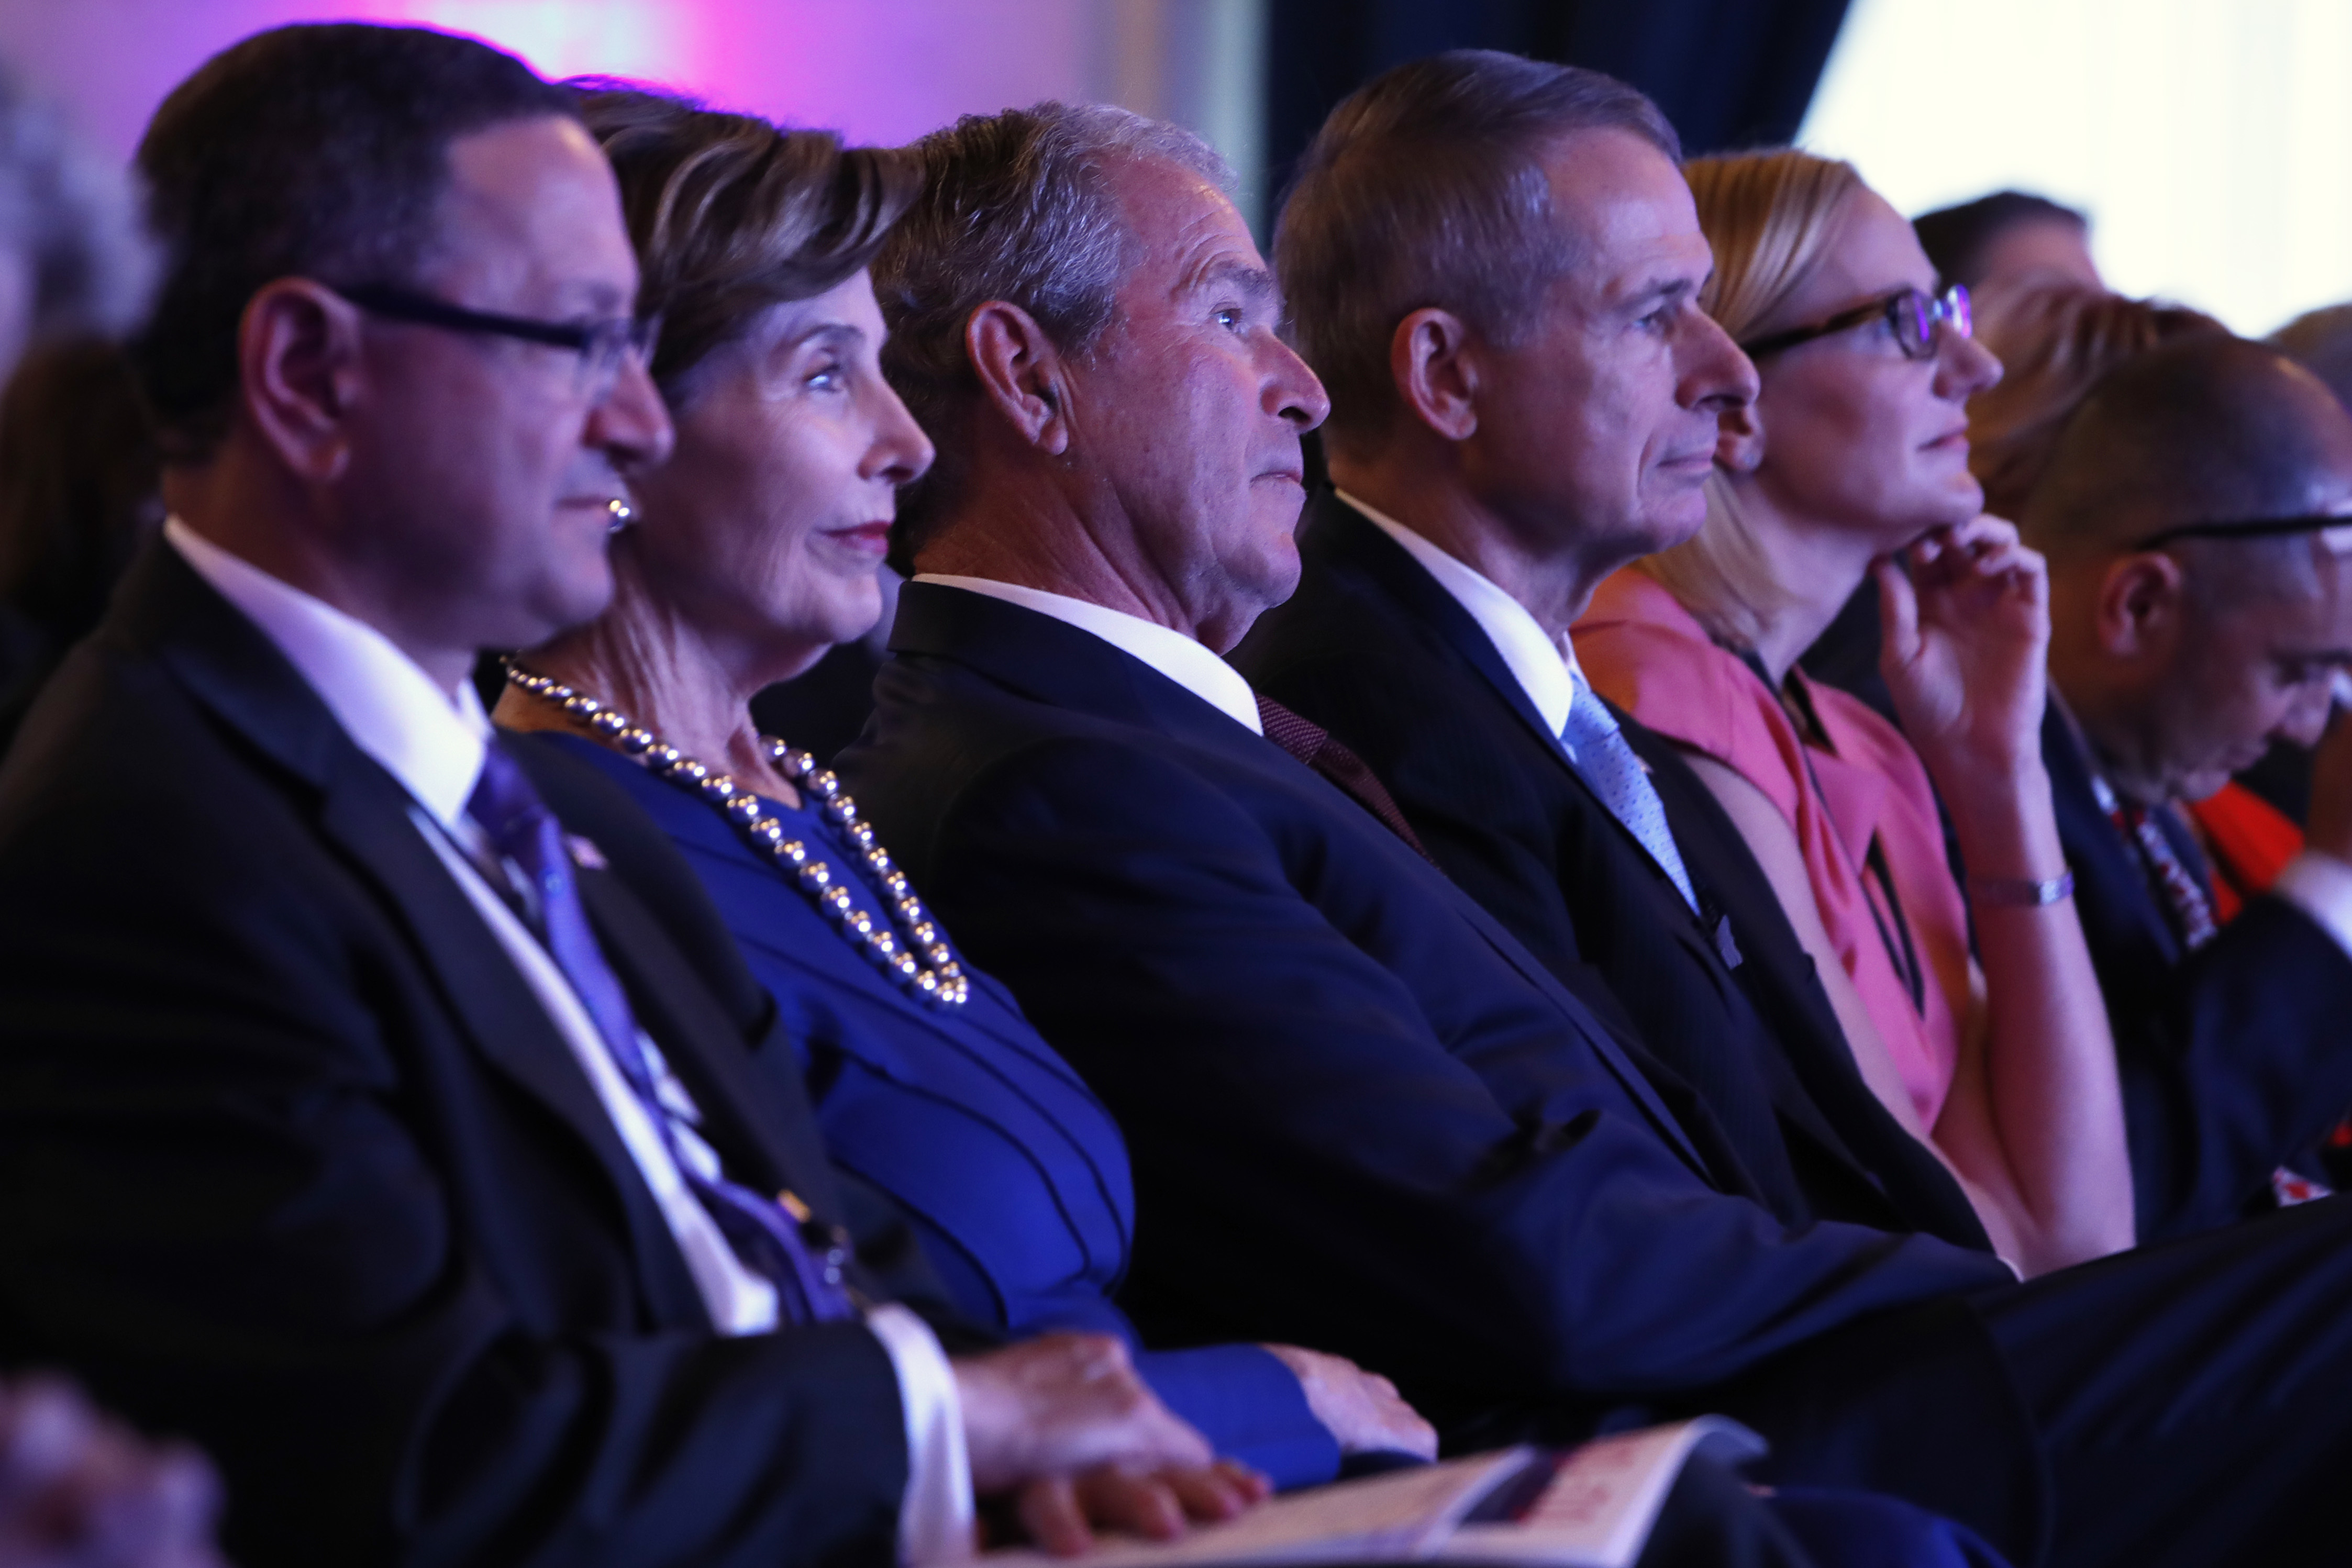 <div class='meta'><div class='origin-logo' data-origin='none'></div><span class='caption-text' data-credit='AP Photo/Jacquelyn Martin'>In the glow of stage lighting, former first lady Laura Bush, second from left, listens with former President George W. Bush, at a summit held by the George W. Bush Institute.</span></div>